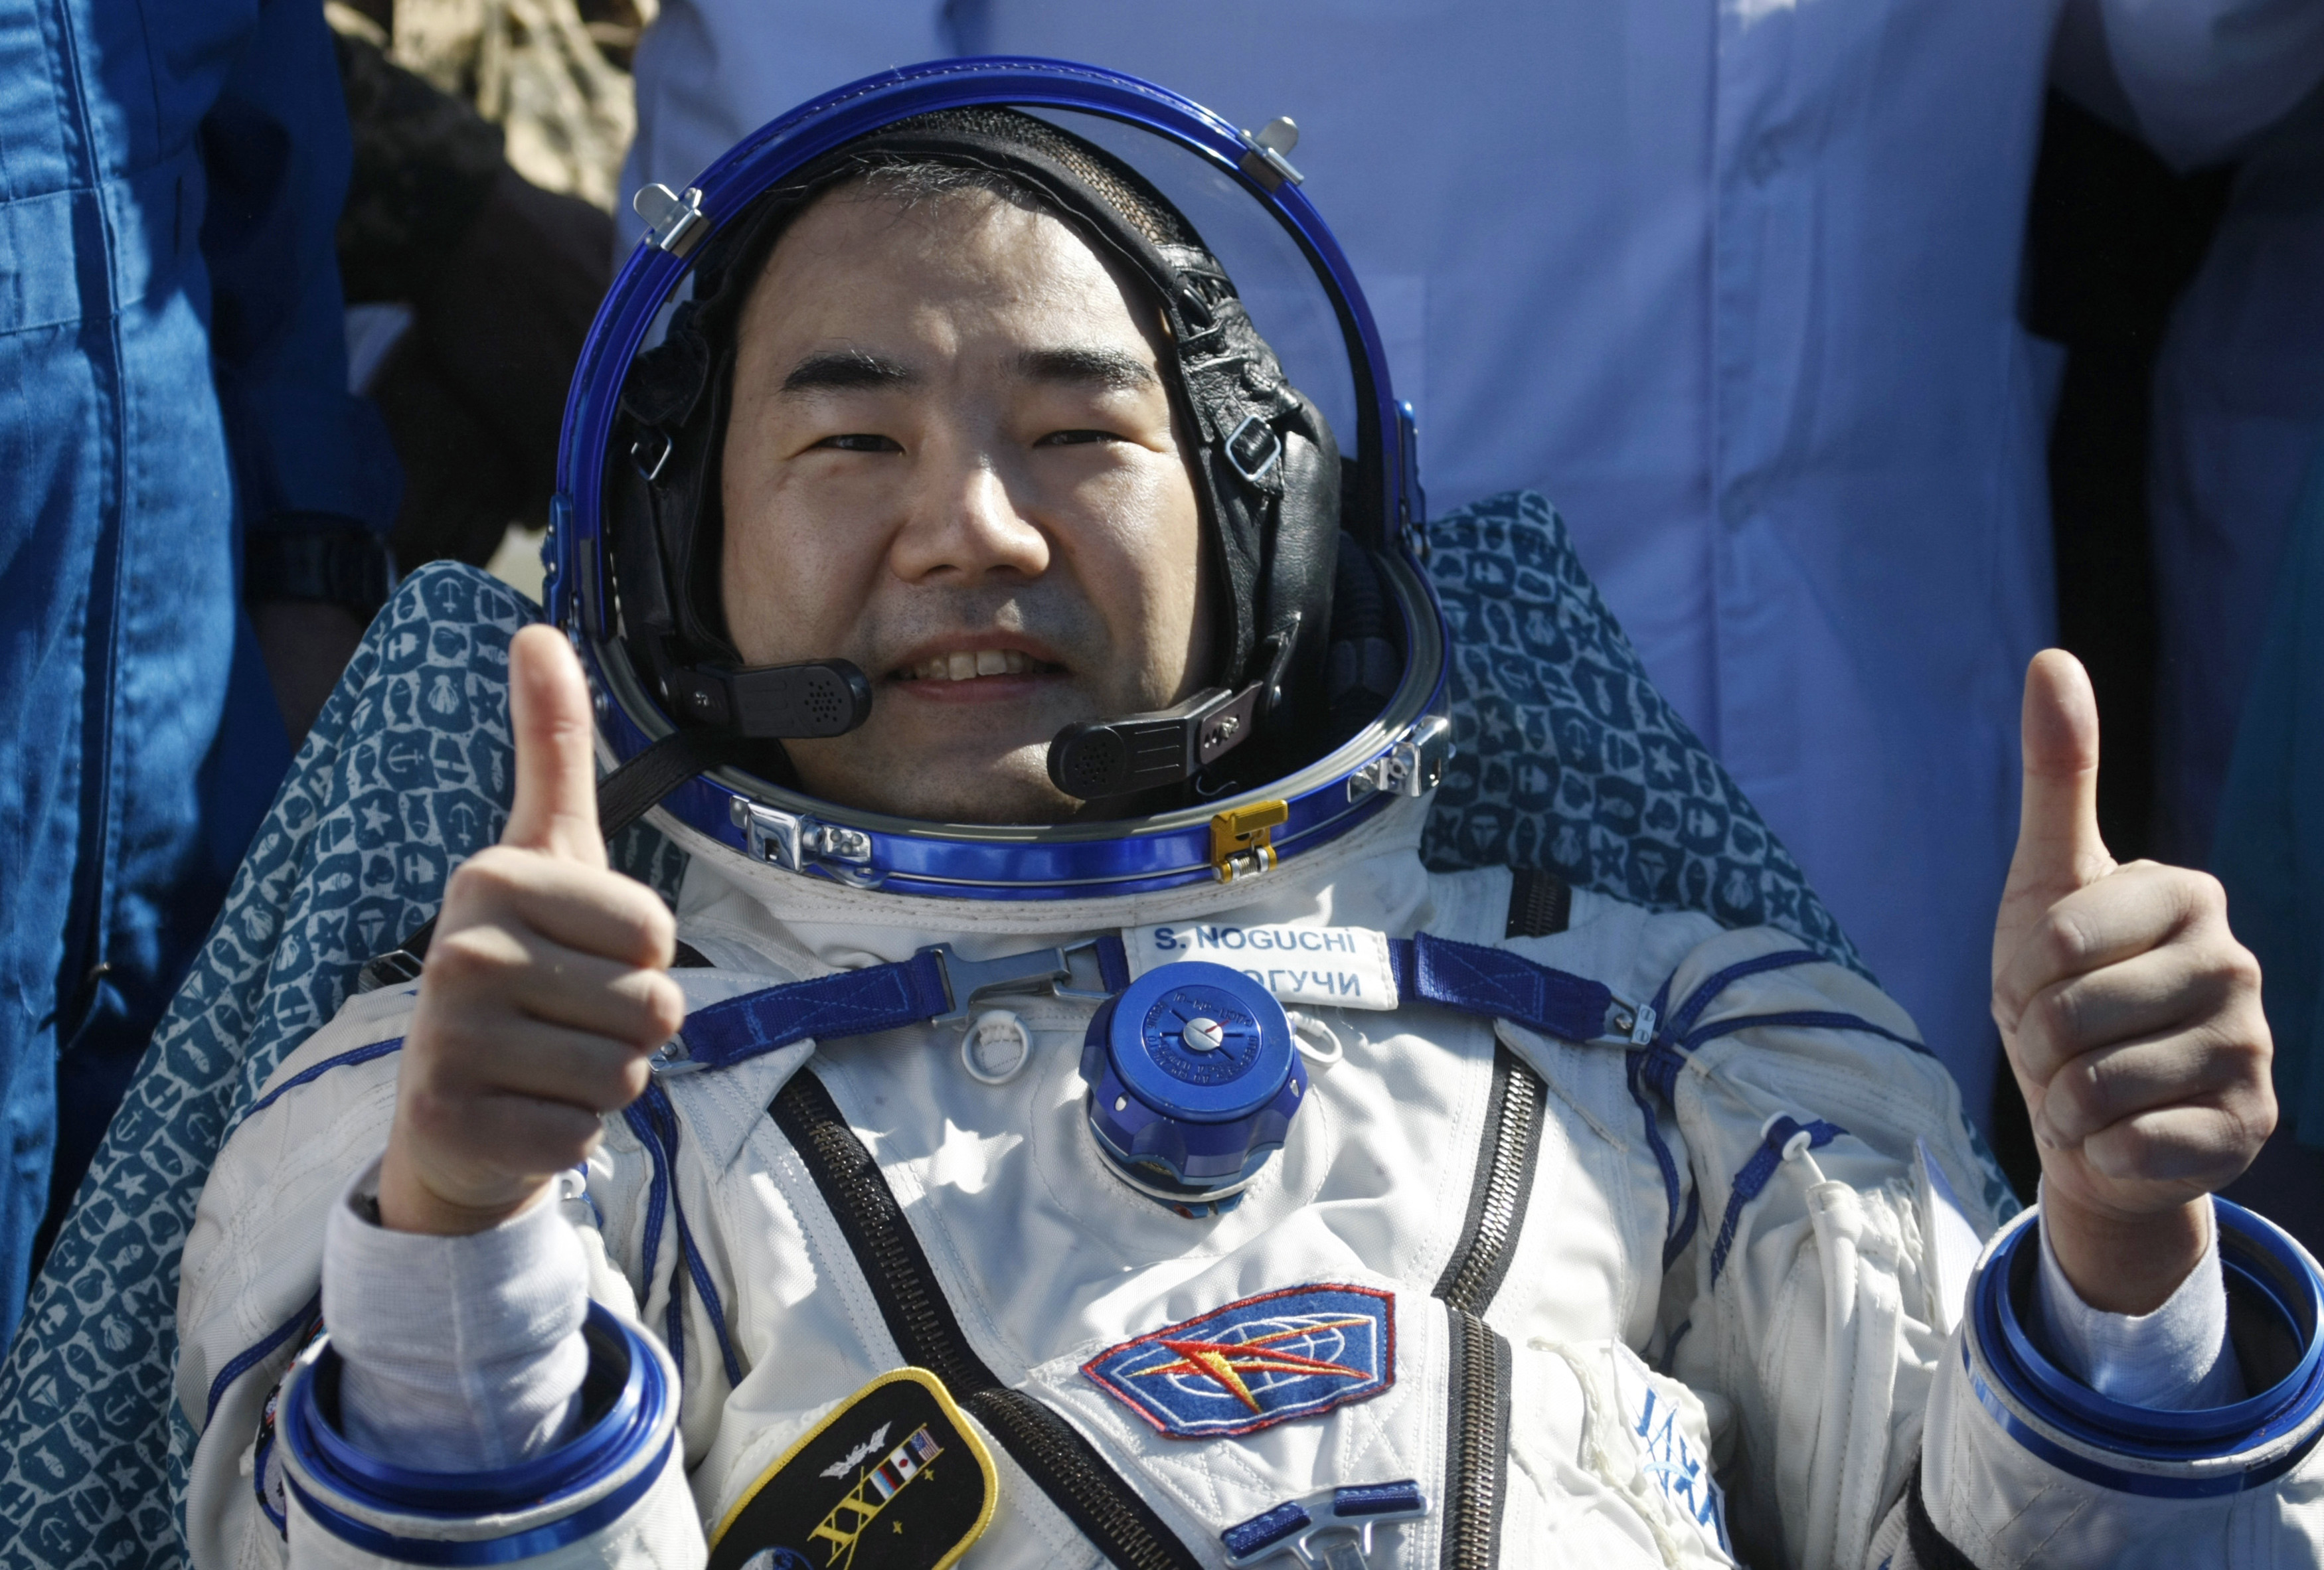 Japan Aerospace Exploration Agency astronaut Soichi Noguchi gives a thumbs-up minutes after the landing near the town of Zhezkazgan June 2, 2010. Noguchi, Commander Oleg Kotov of Russia (not pictured) and U.S. astronaut Timothy J. Creamer (not pictured),who make up Russian Expedition 23 and are commanded by Kotov, left Earth in December of last year for the $100 billion, 16-nation International Space Station (ISS). REUTERS/Pool/Mikhail Metzel (KAZAKHSTAN - Tags: SCI TECH) - RTR2ENIW